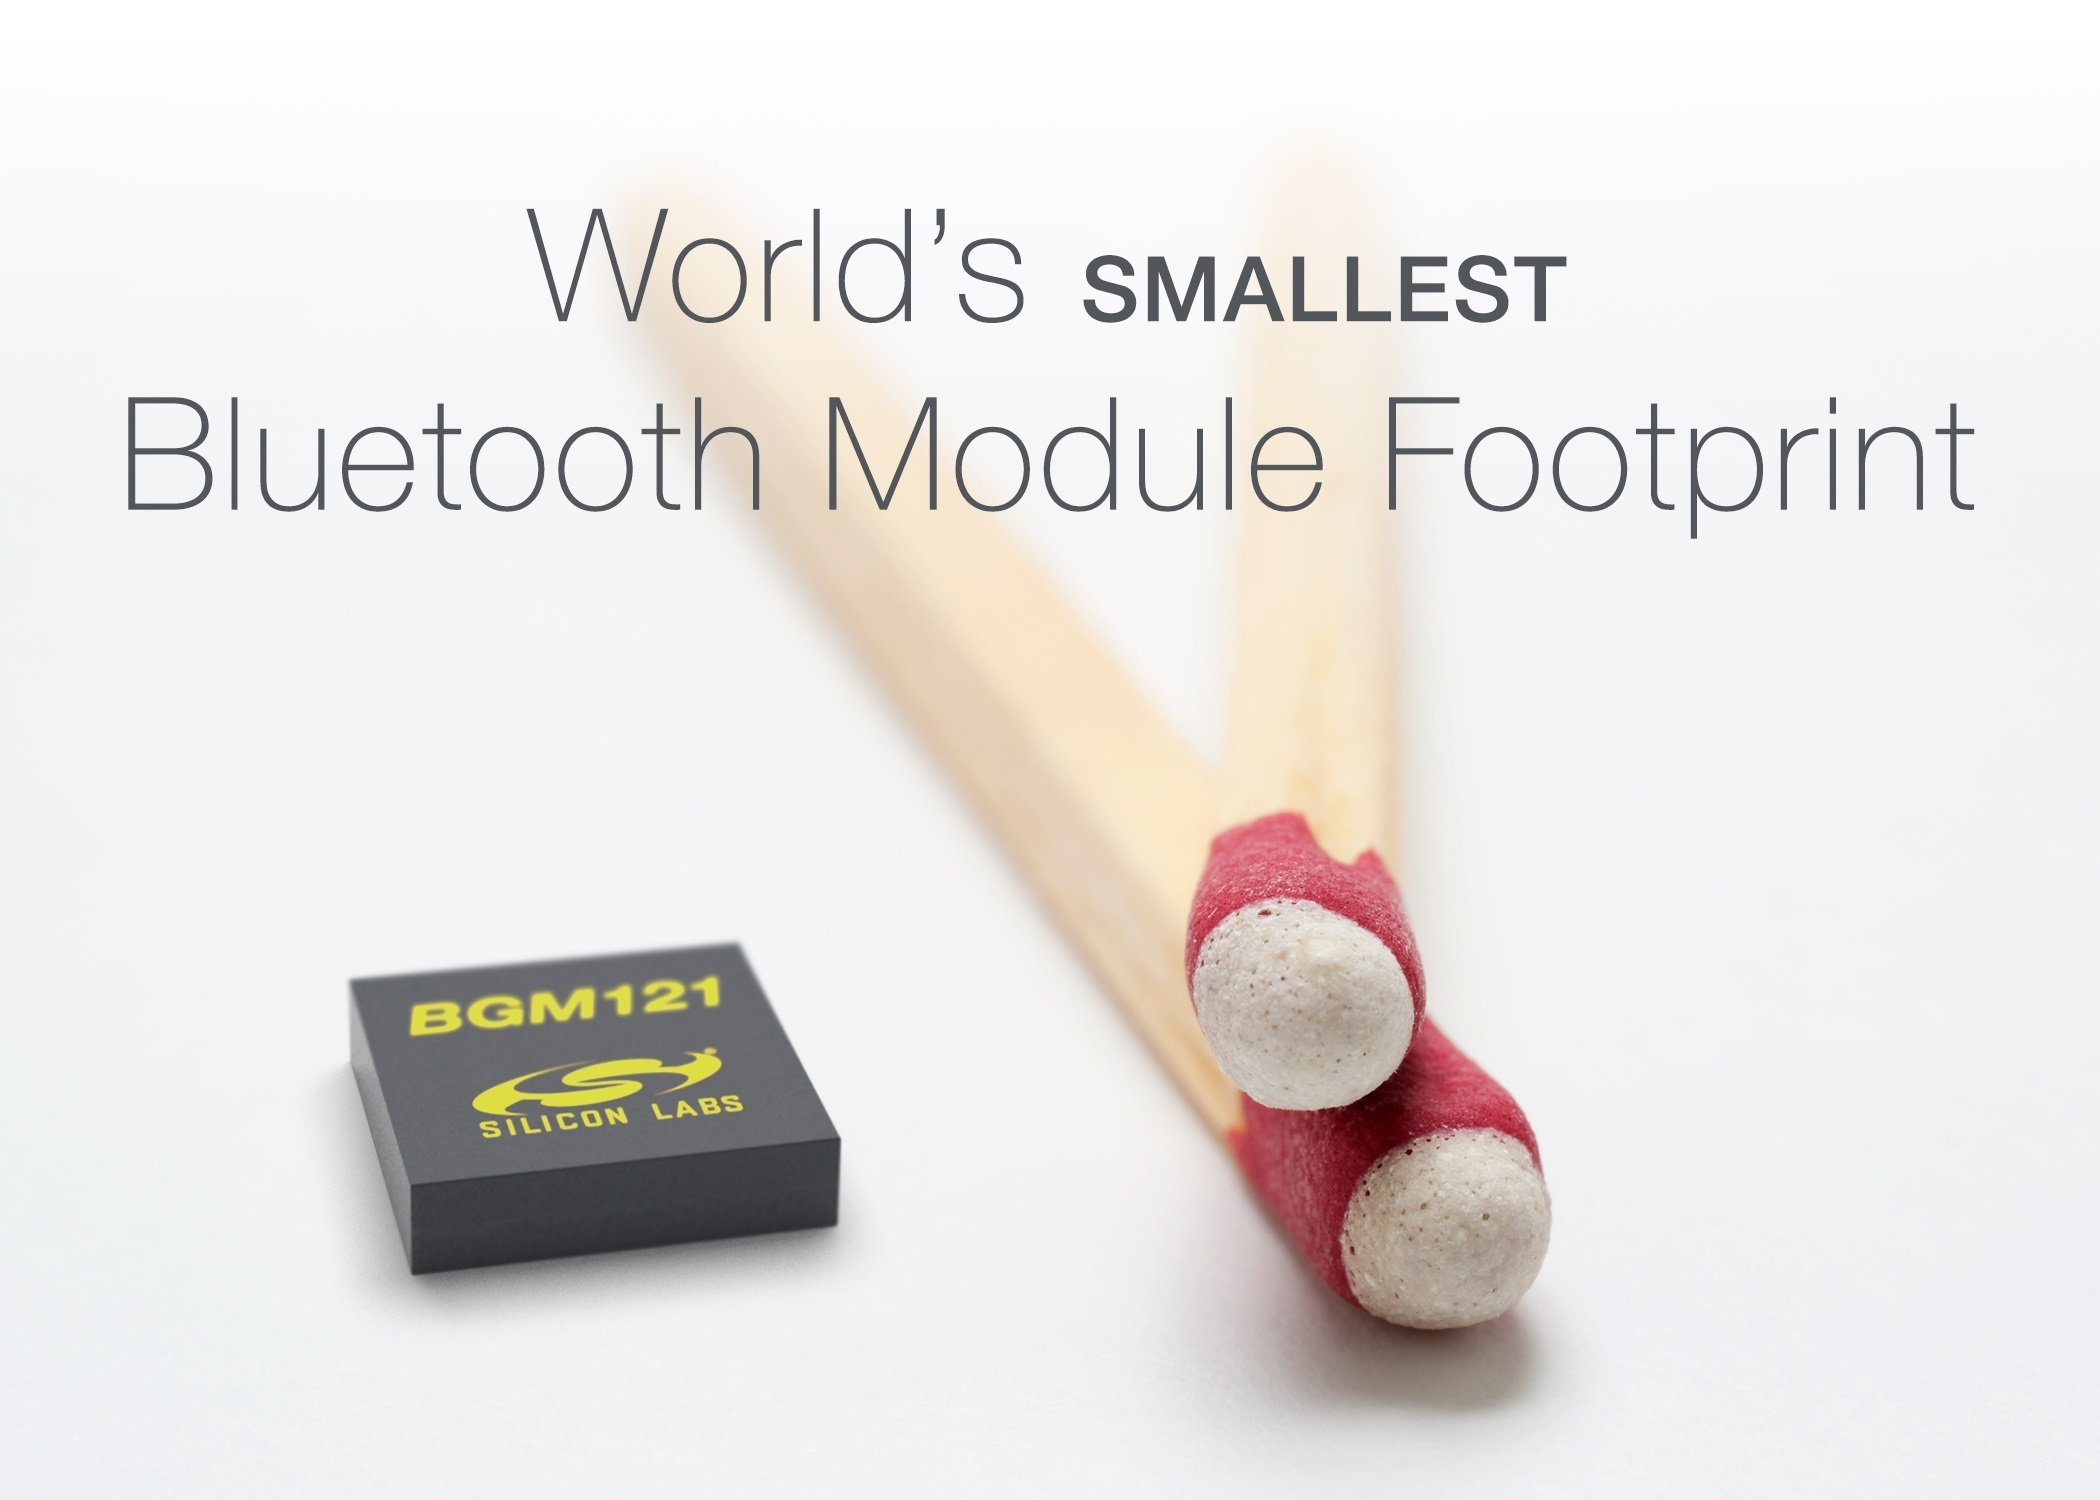 Bluetooth SiP claims industry's smallest form factor with antenna